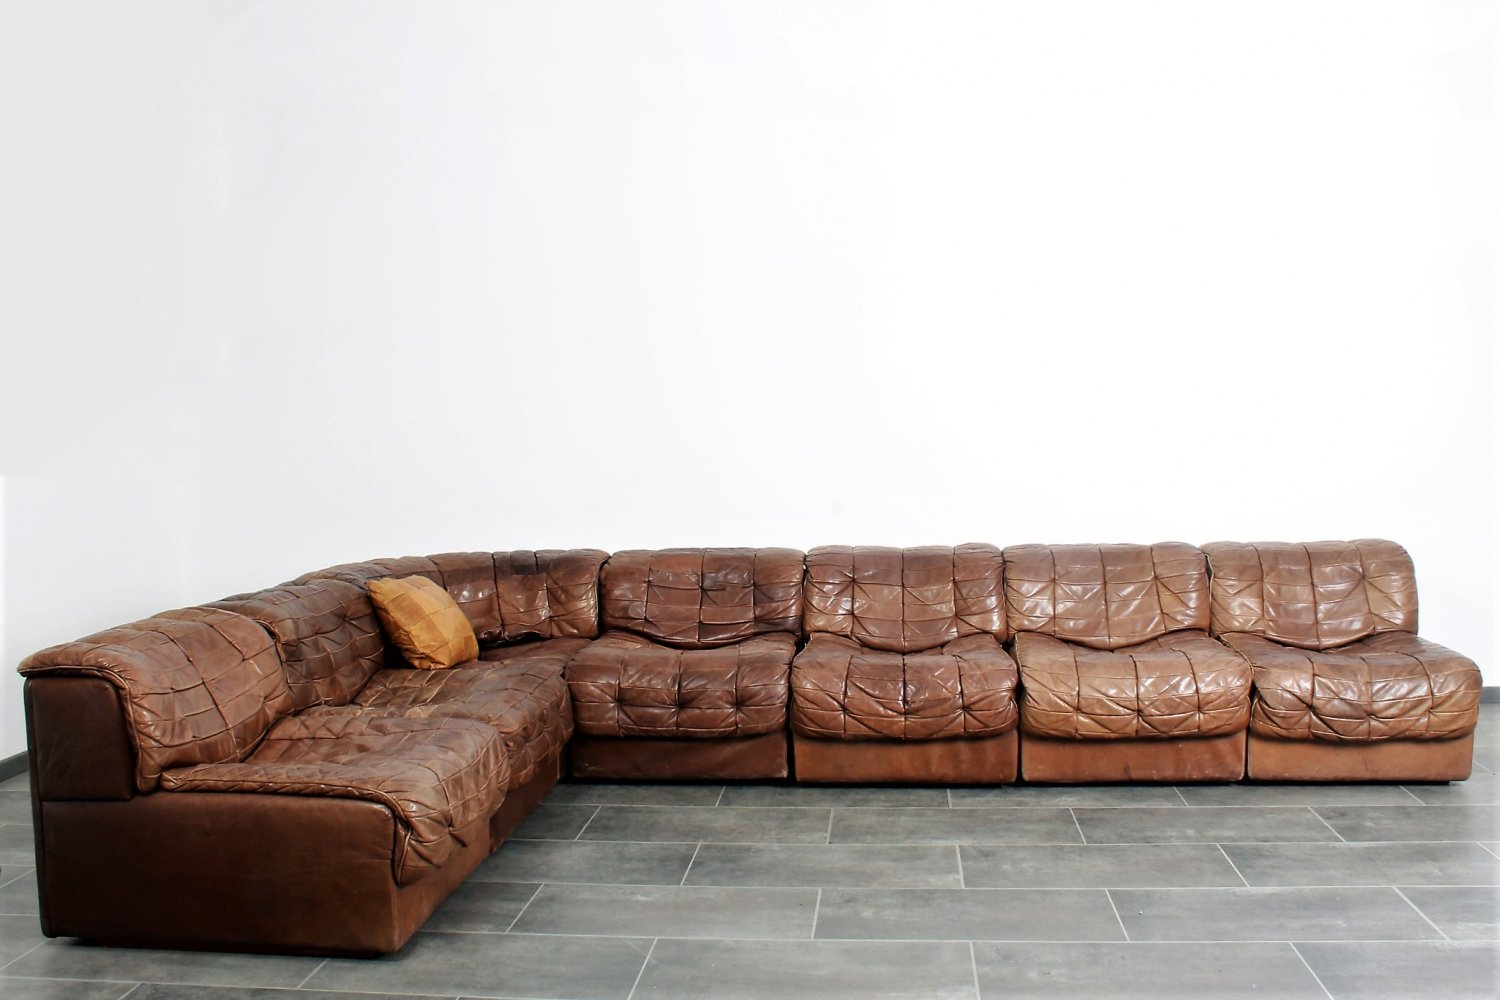 Big DS11 lounge corner by De Sede in leather, 1970s